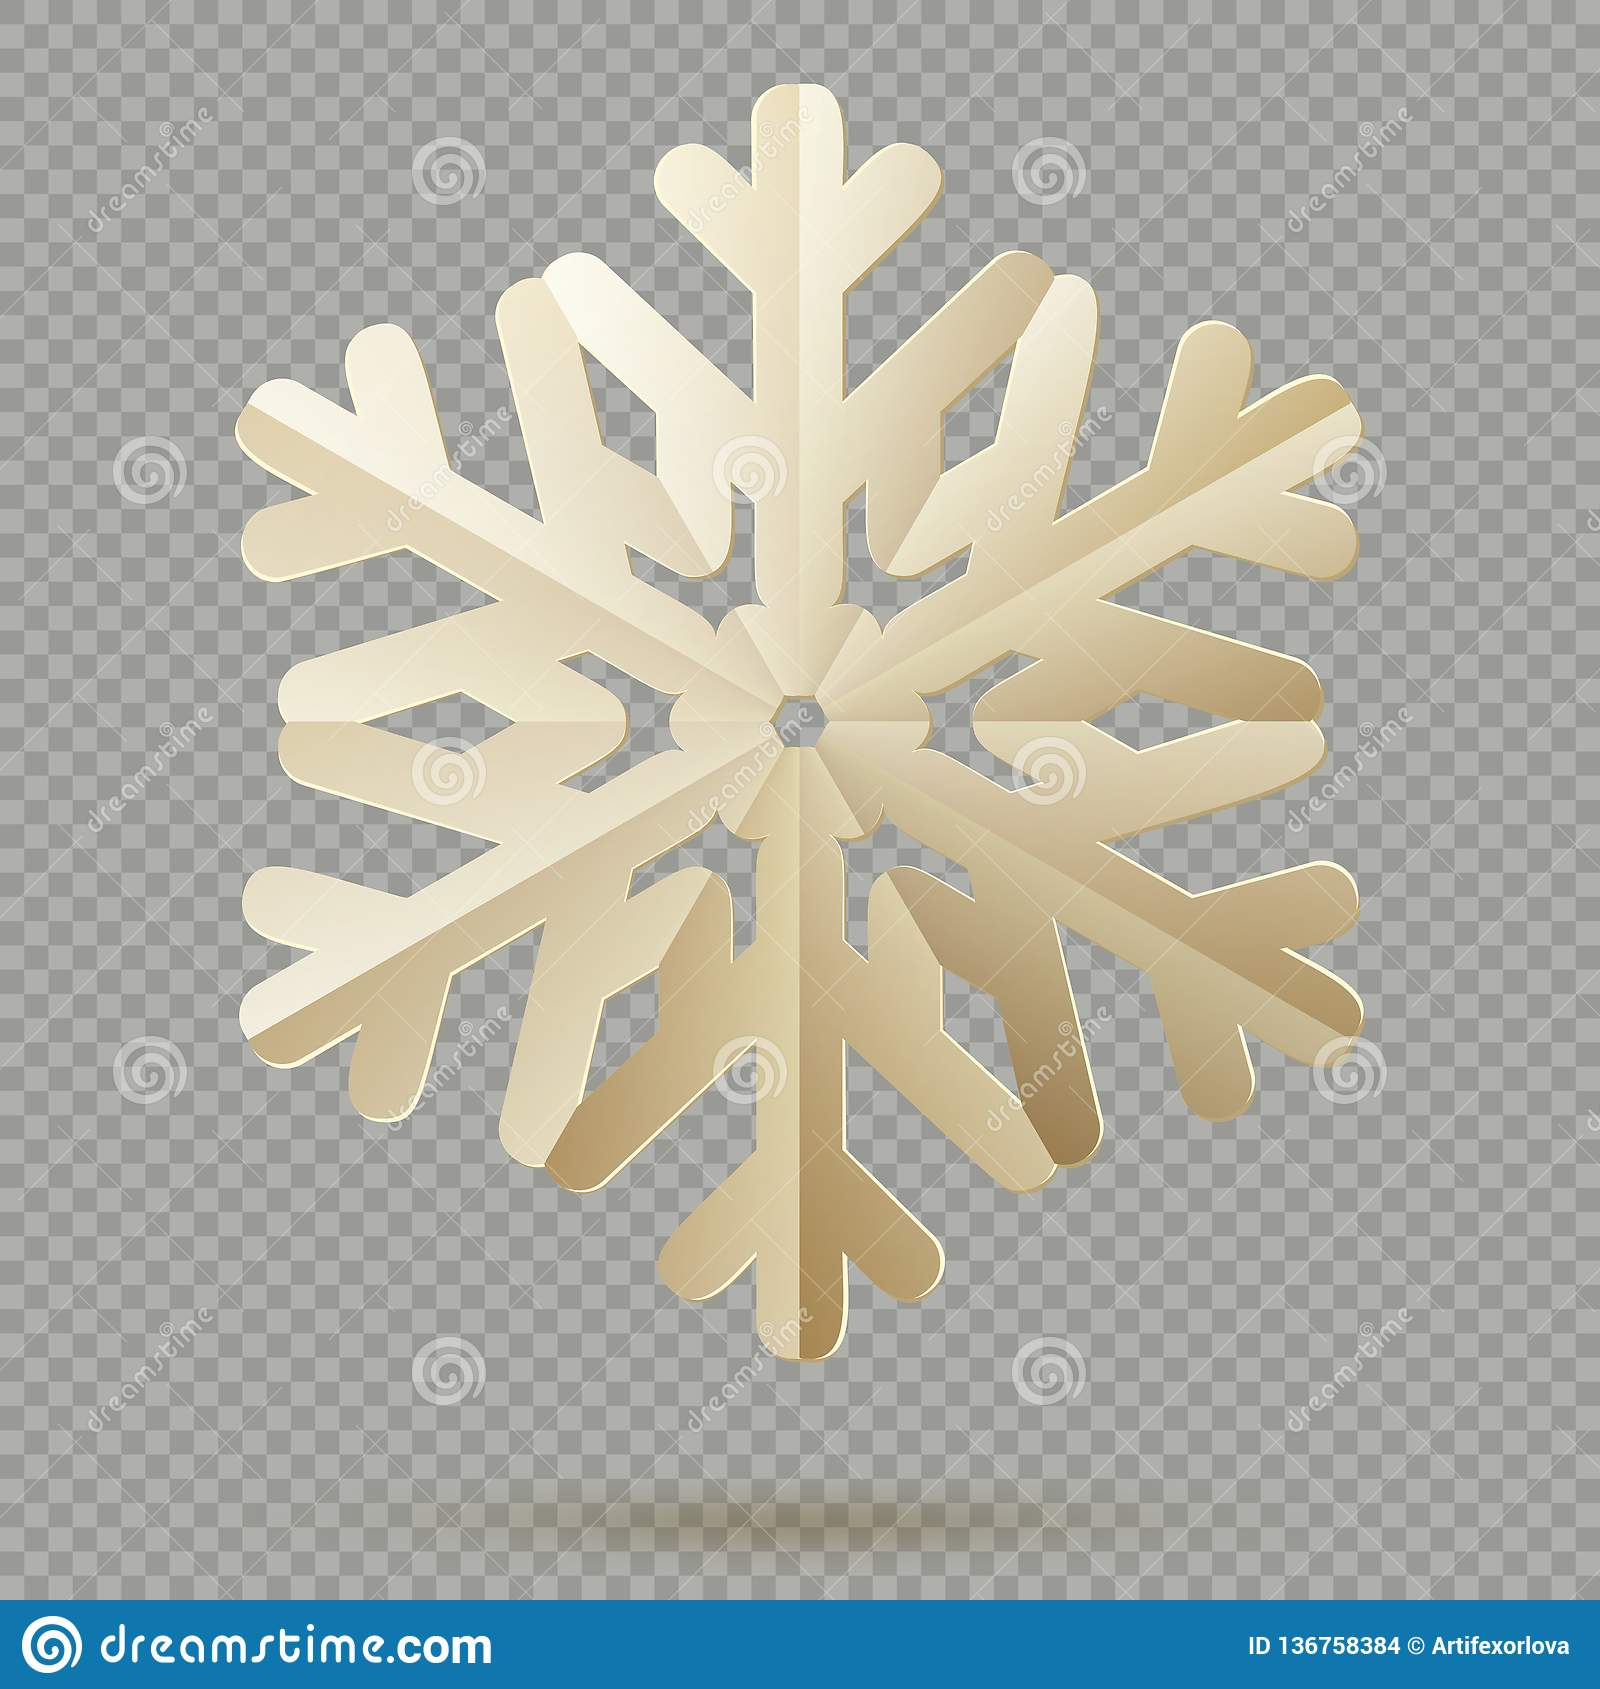 Vintage Christmas decoration paper snowflakes with shadow isolated on transparent background. EPS 10